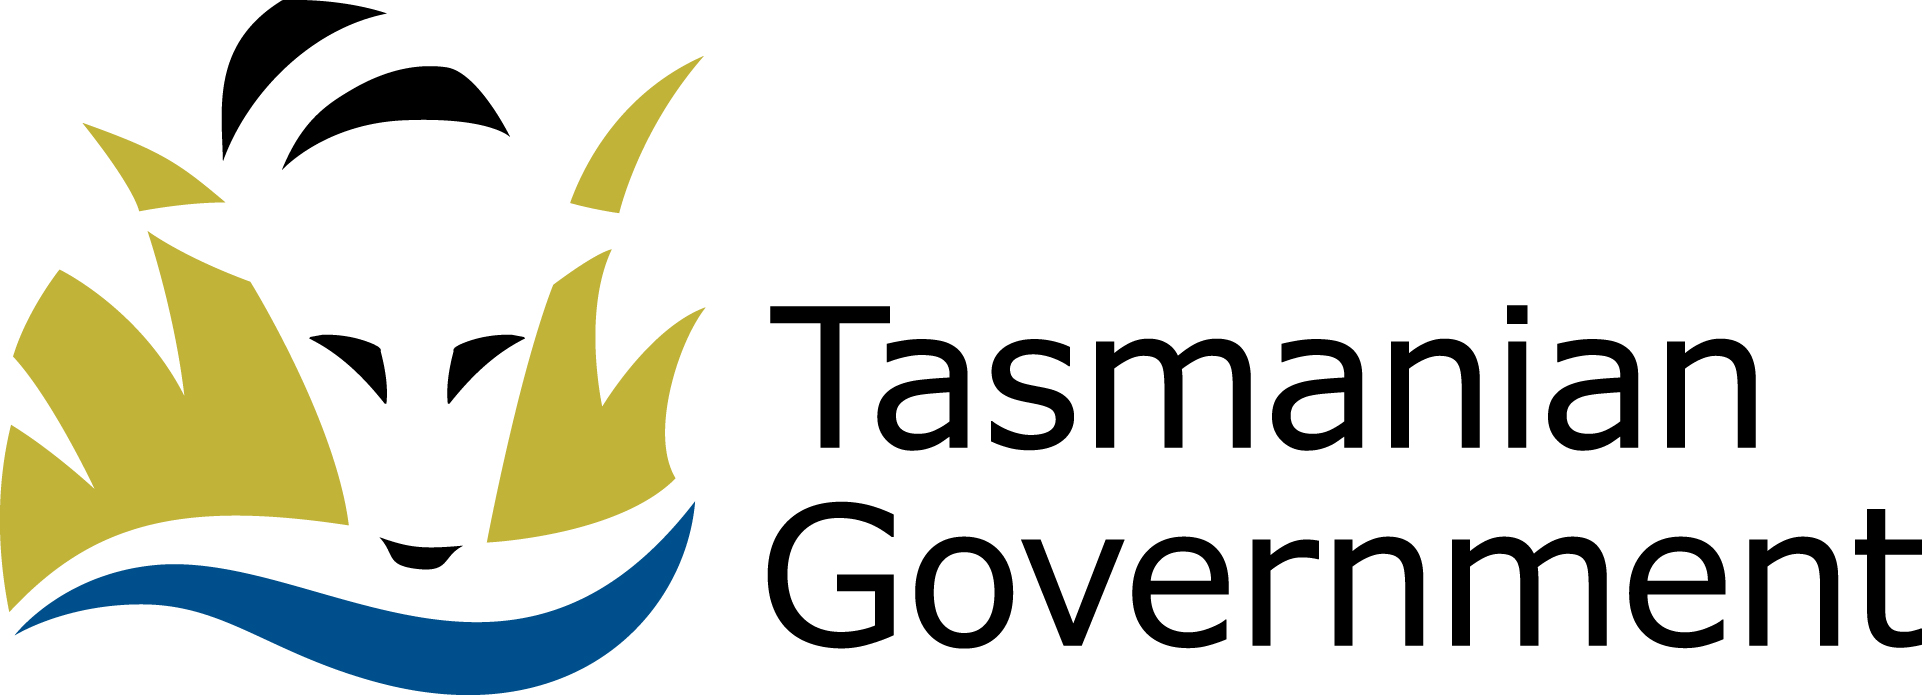 Tasmanian Government Logo - Horizontal Colour (JPG).jpg